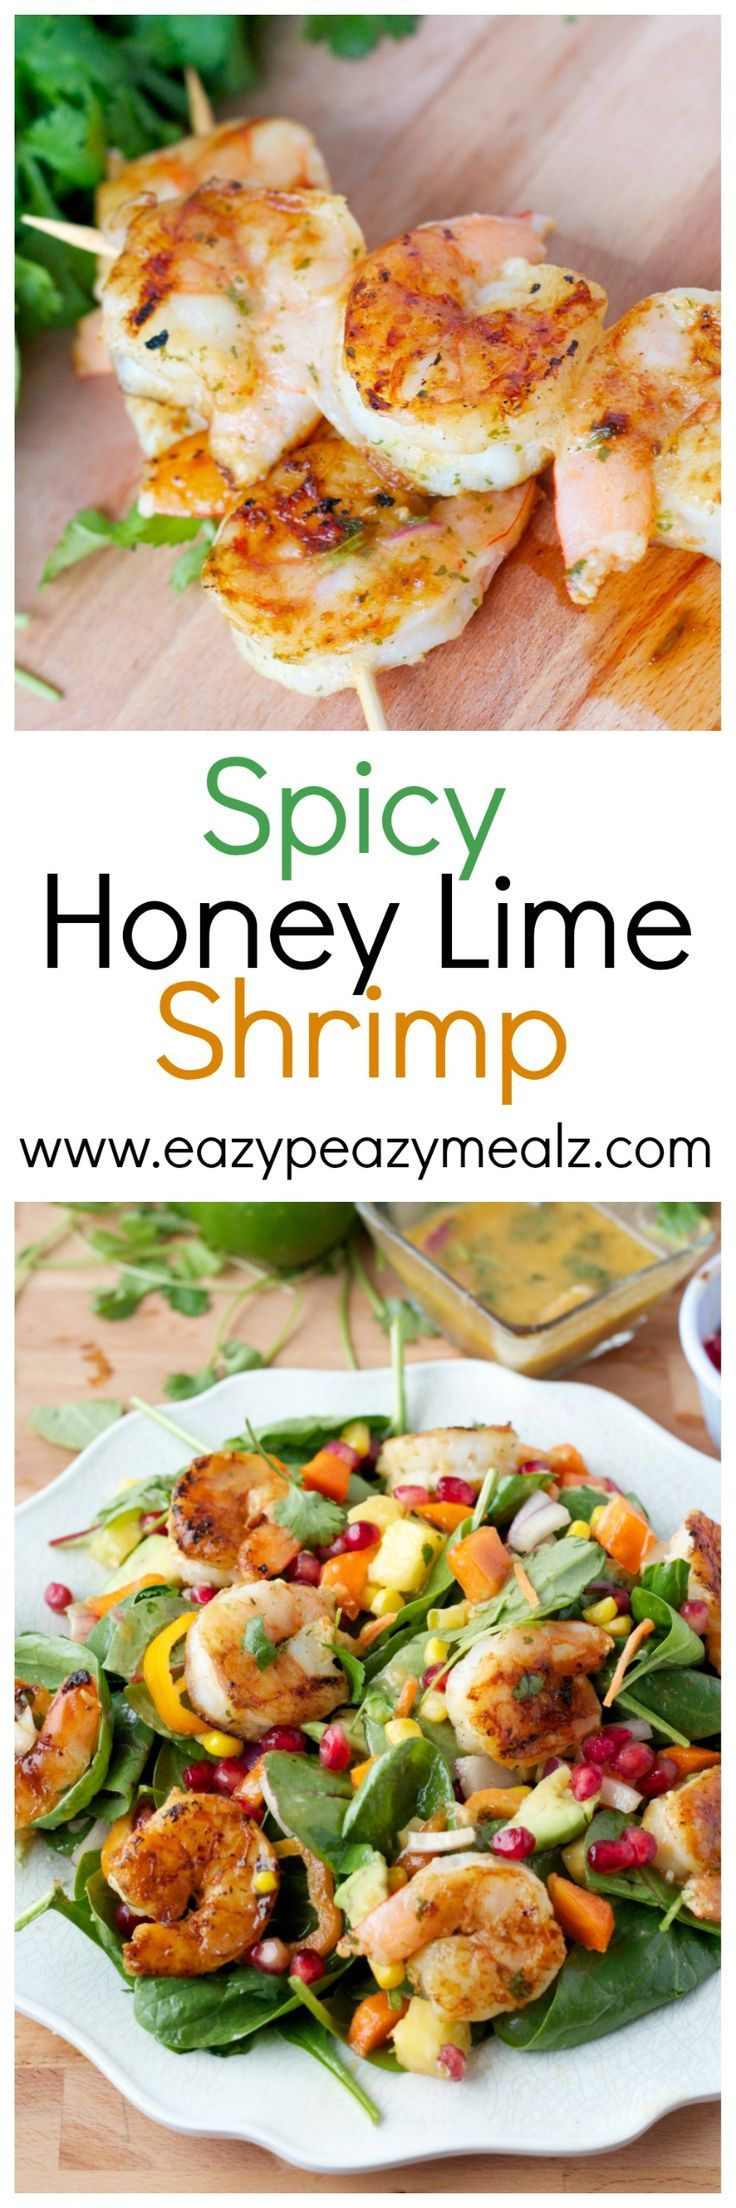 all sports shoes brand list Spicy Honey Lime Shrimp Kabobs   Recipe   Shrimp  Limes and Honey